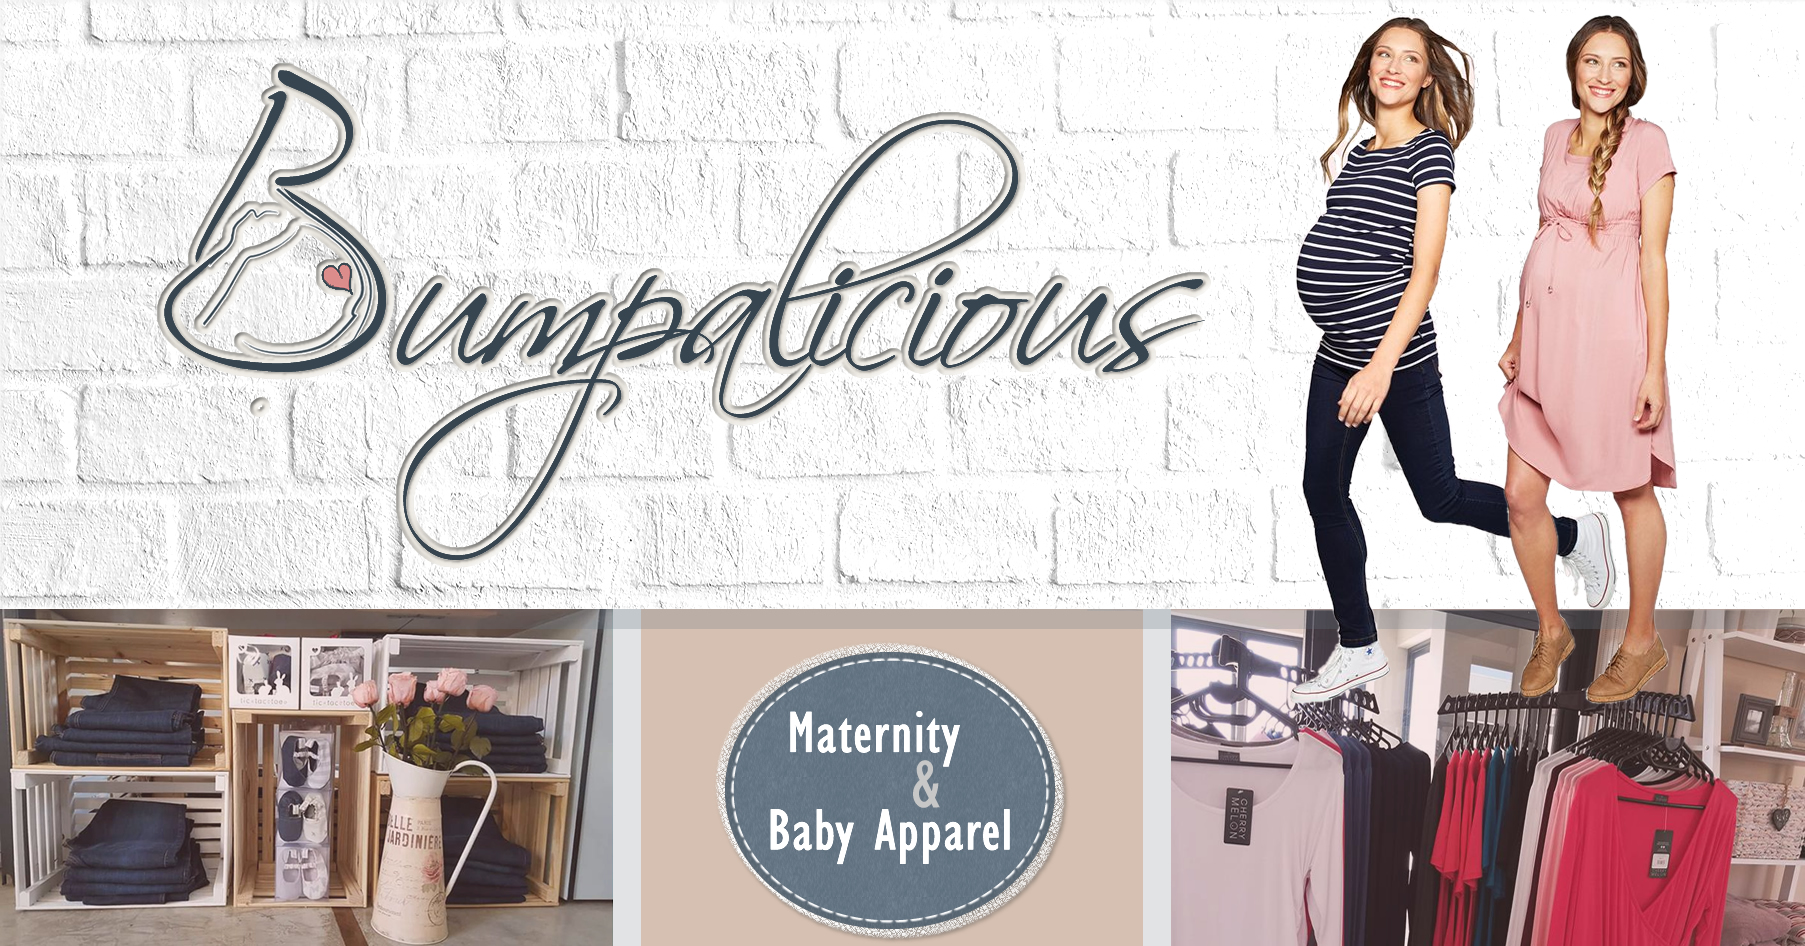 Dress your bump in style!